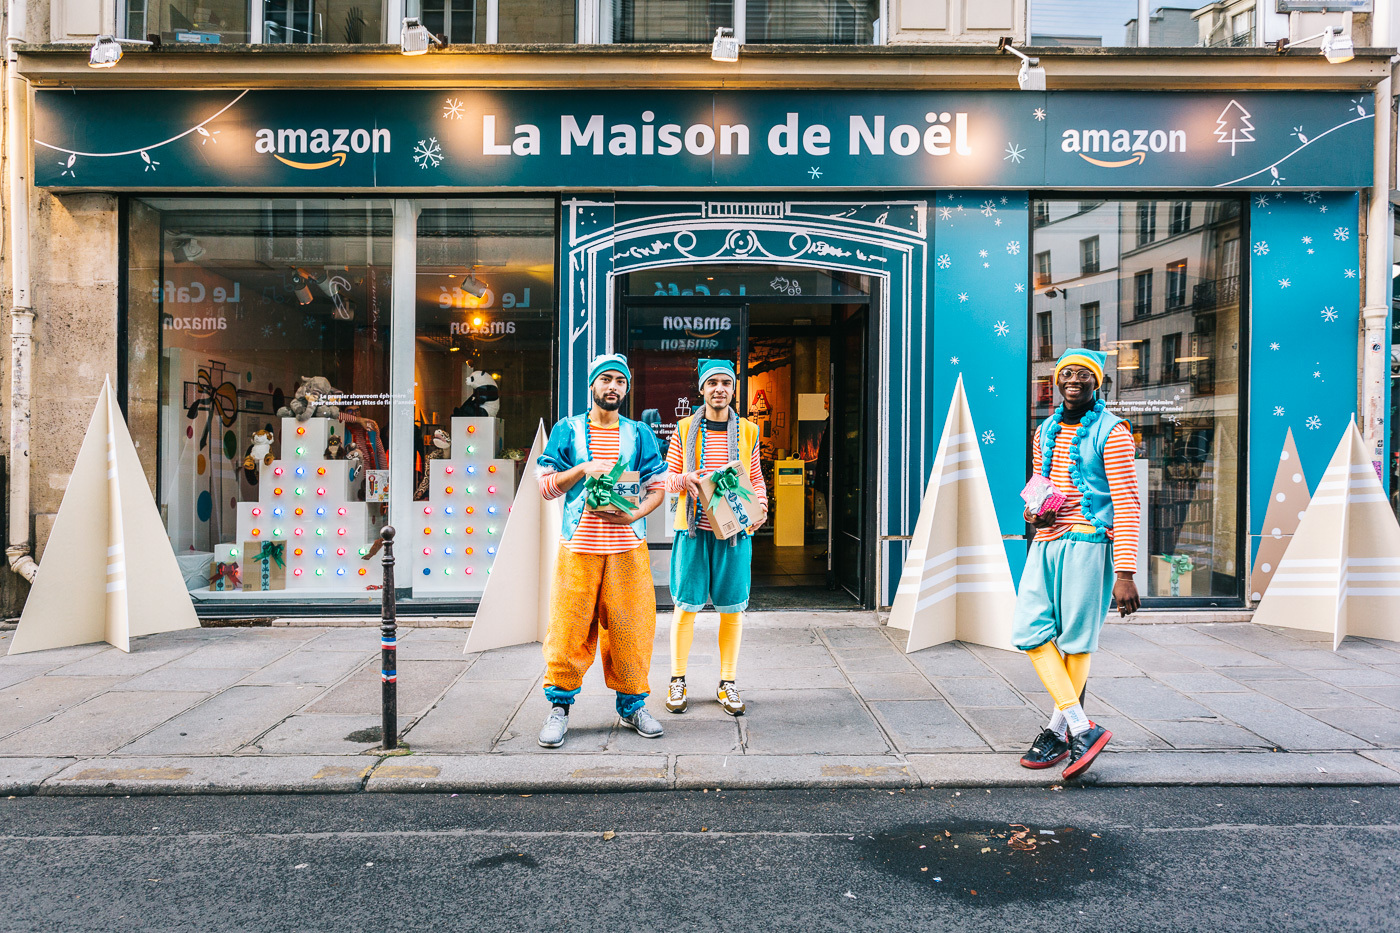 Amazon, pop up, appearhere, appear here,